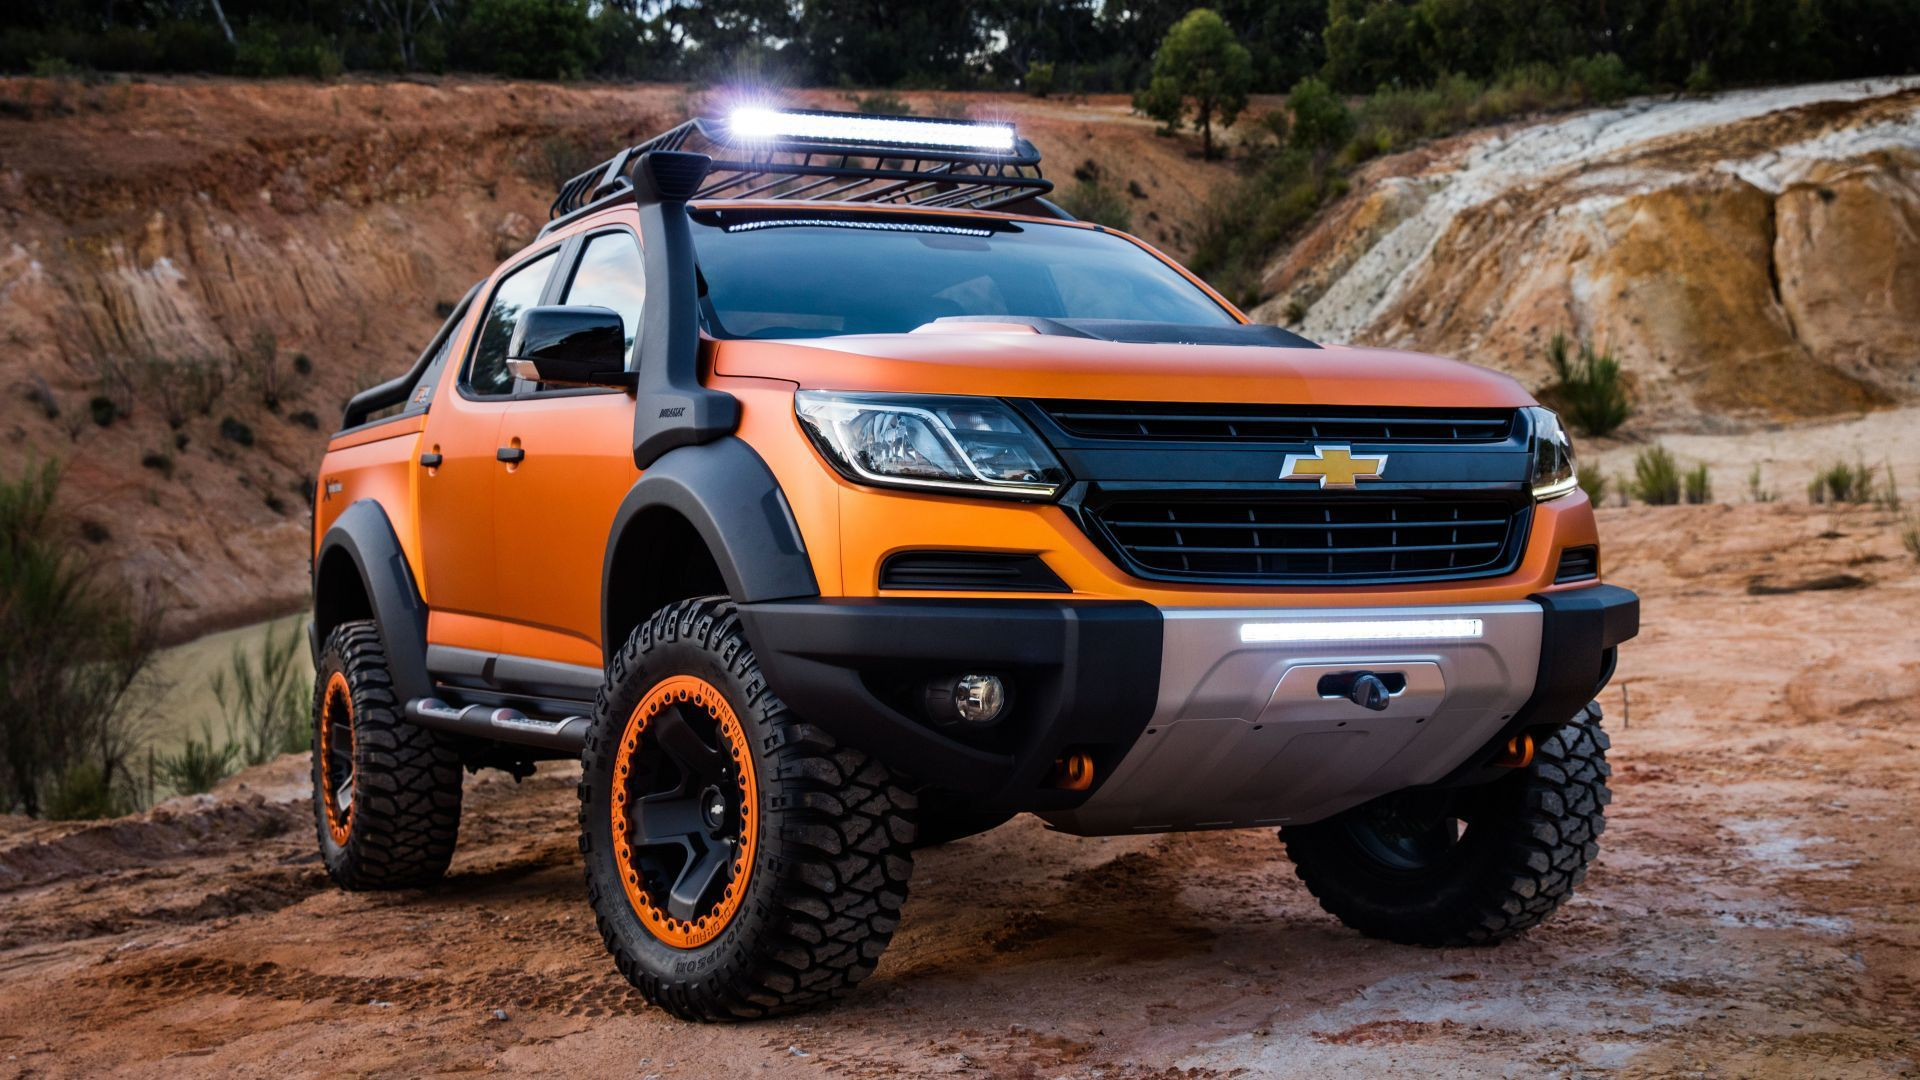 2019 Chevy Colorado Zr2 Release Date 2019 Chevy Colorado Zr2 Is Undoubtedly A Brand New Pickup Car Which Has The Chevrolet Colorado Chevy Colorado Chevrolet